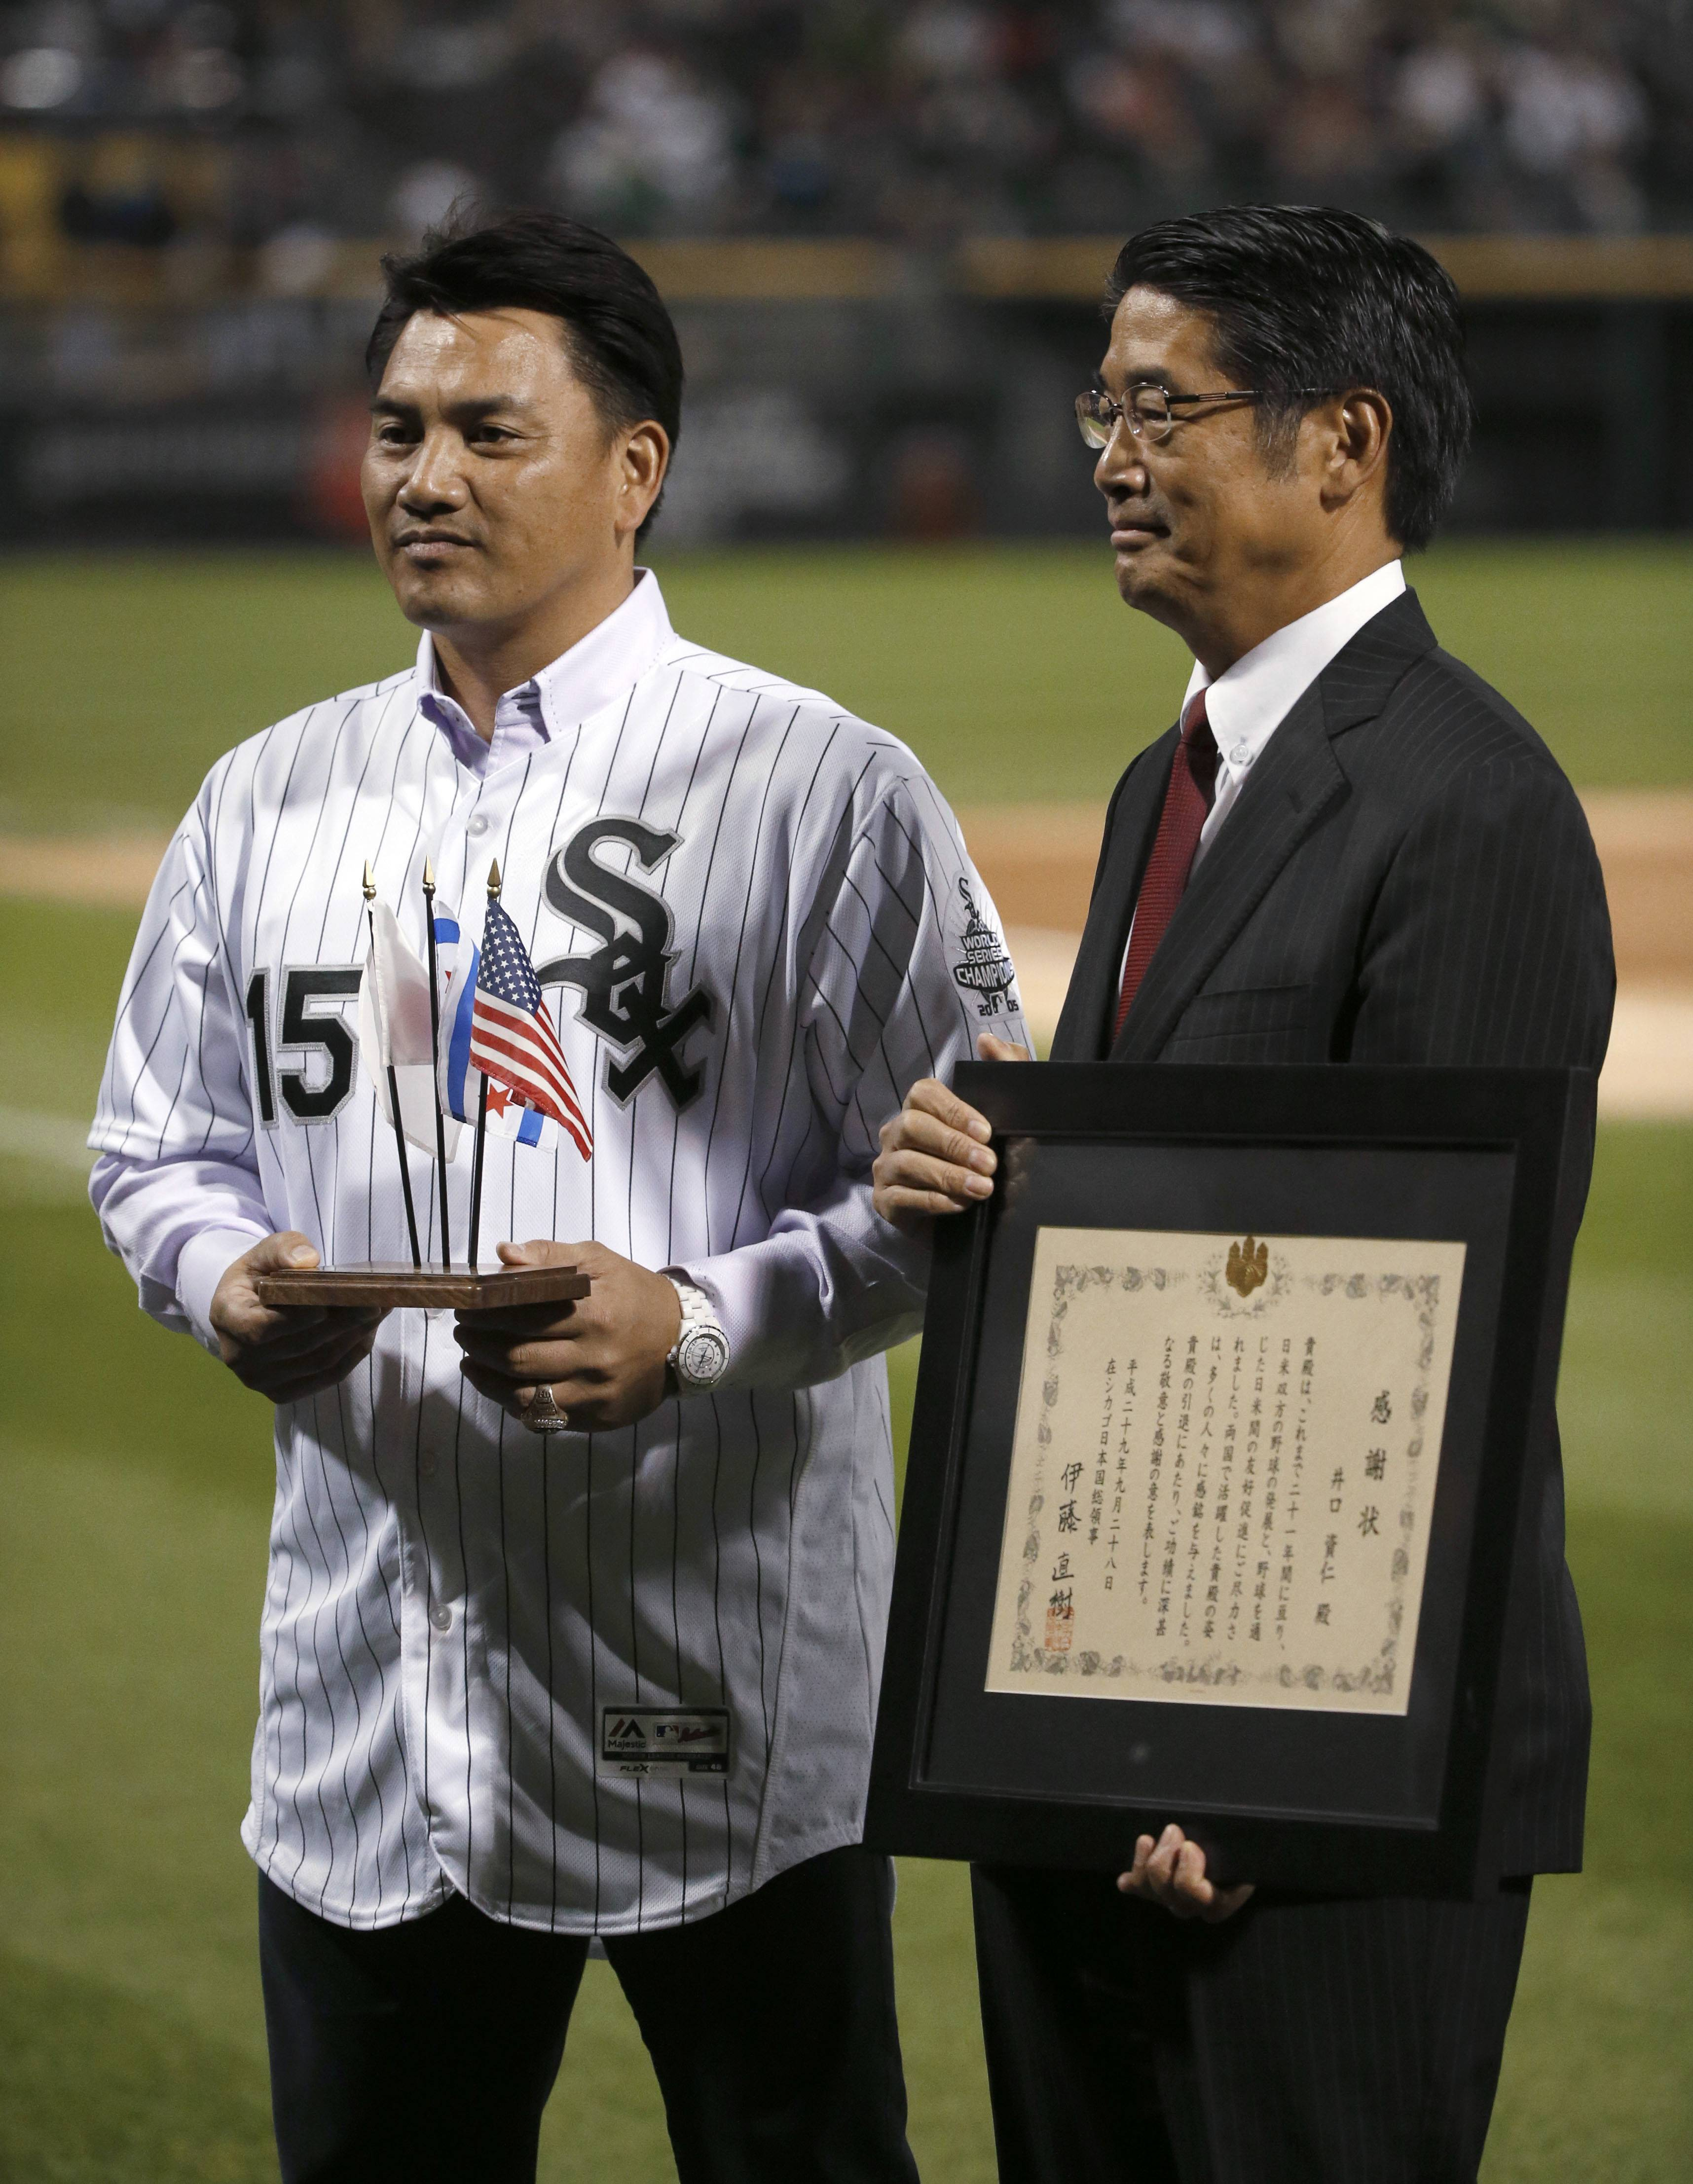 Former Chicago White Sox second baseman Tadahito Iguchi, left, is honored by Naoki Ito, consul-general of Japan in Chicago, during a ceremony before a baseball game between the White Sox and the Los Angeles Angels on Thursday, Sept. 28, 2017, in Chicago.